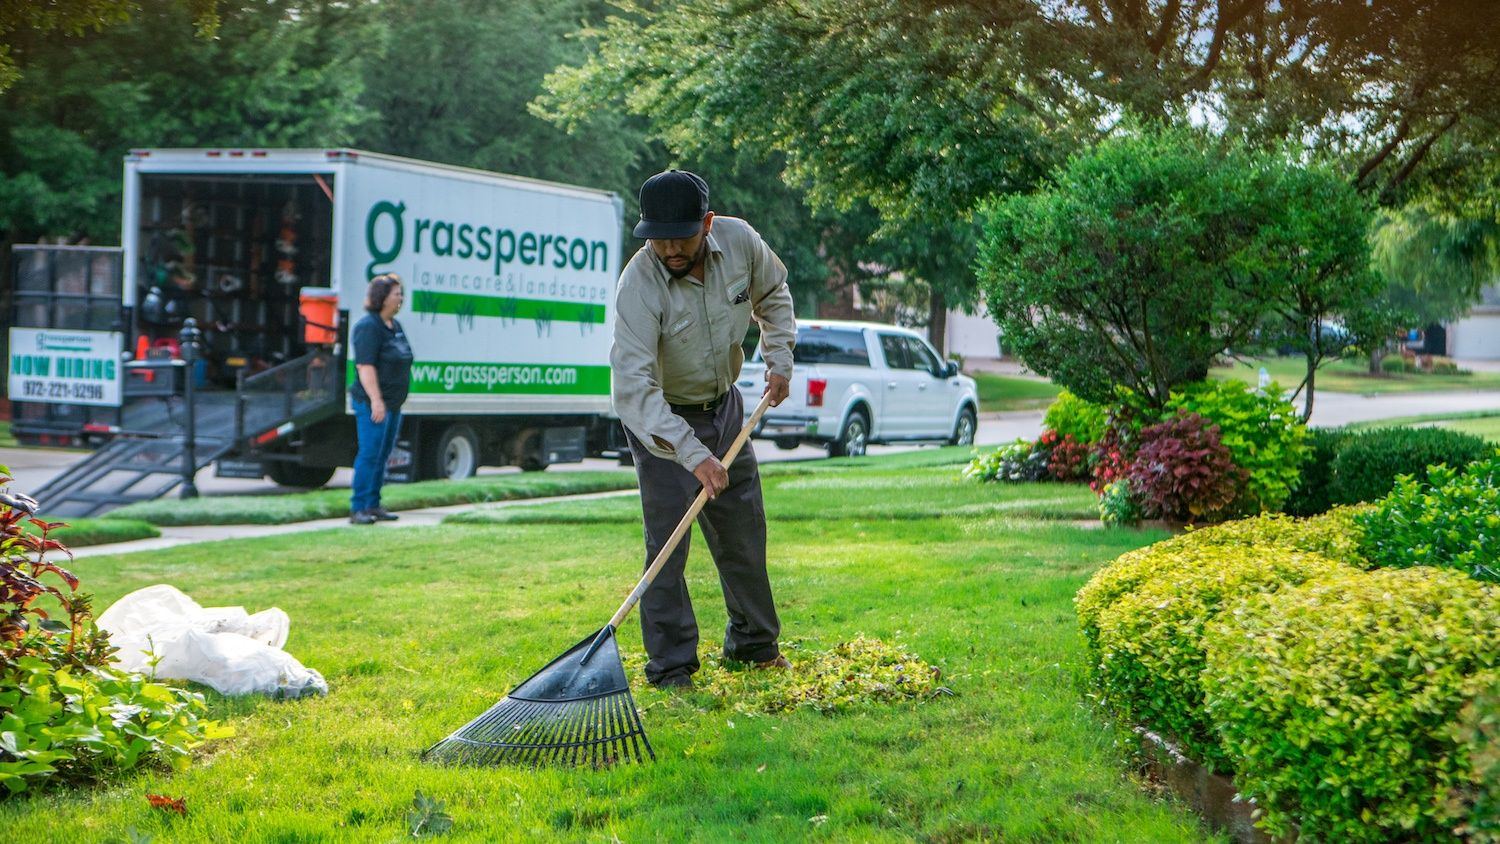 Career Tips: How Much Do Lawn Care & Landscaping Workers Make at Grassperson?